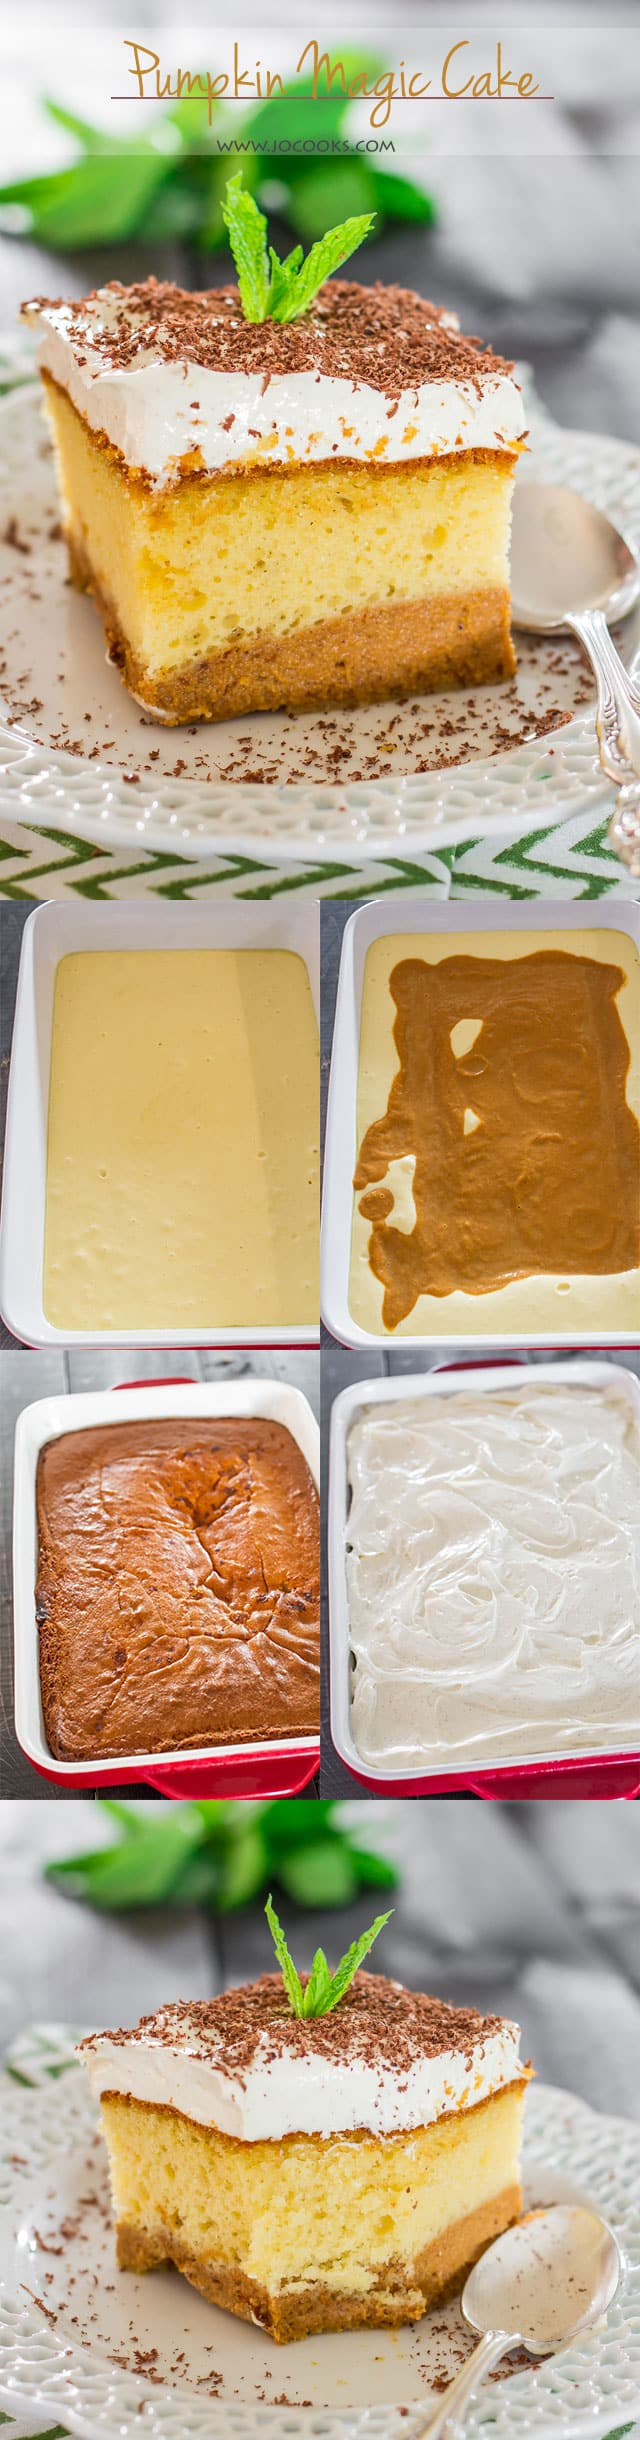 Pumpkin Magic Cake - the magic is in the batter as it separates during baking, creating 2 beautiful layers. To finish it off, top it with a pudding frosting.